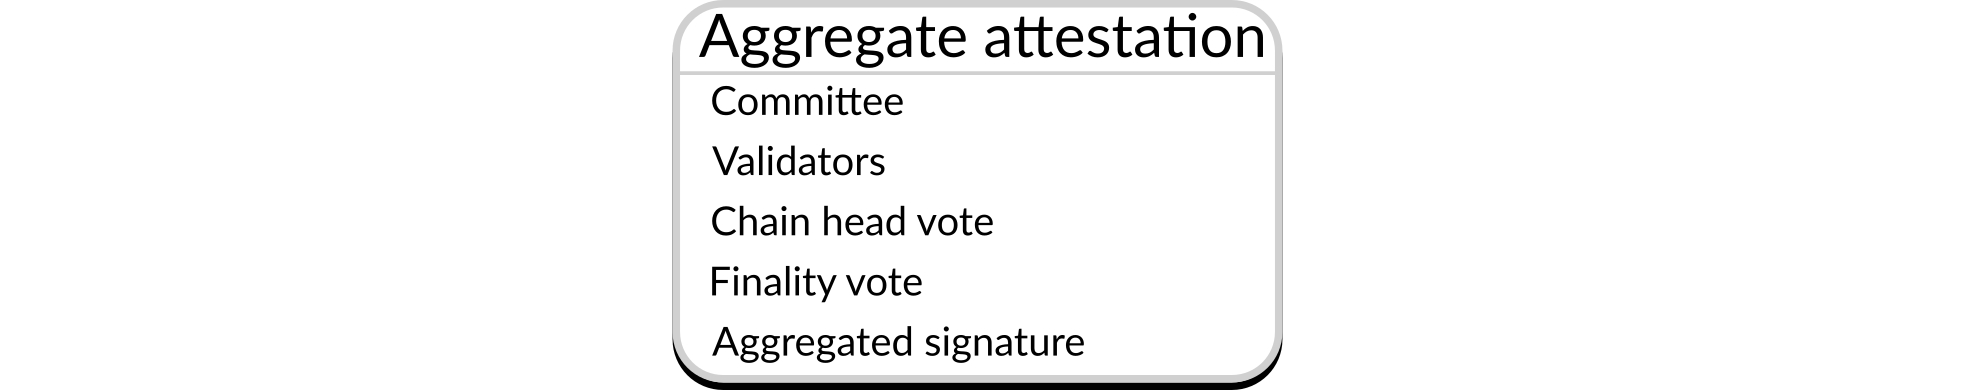 Structure of an aggregate attestation